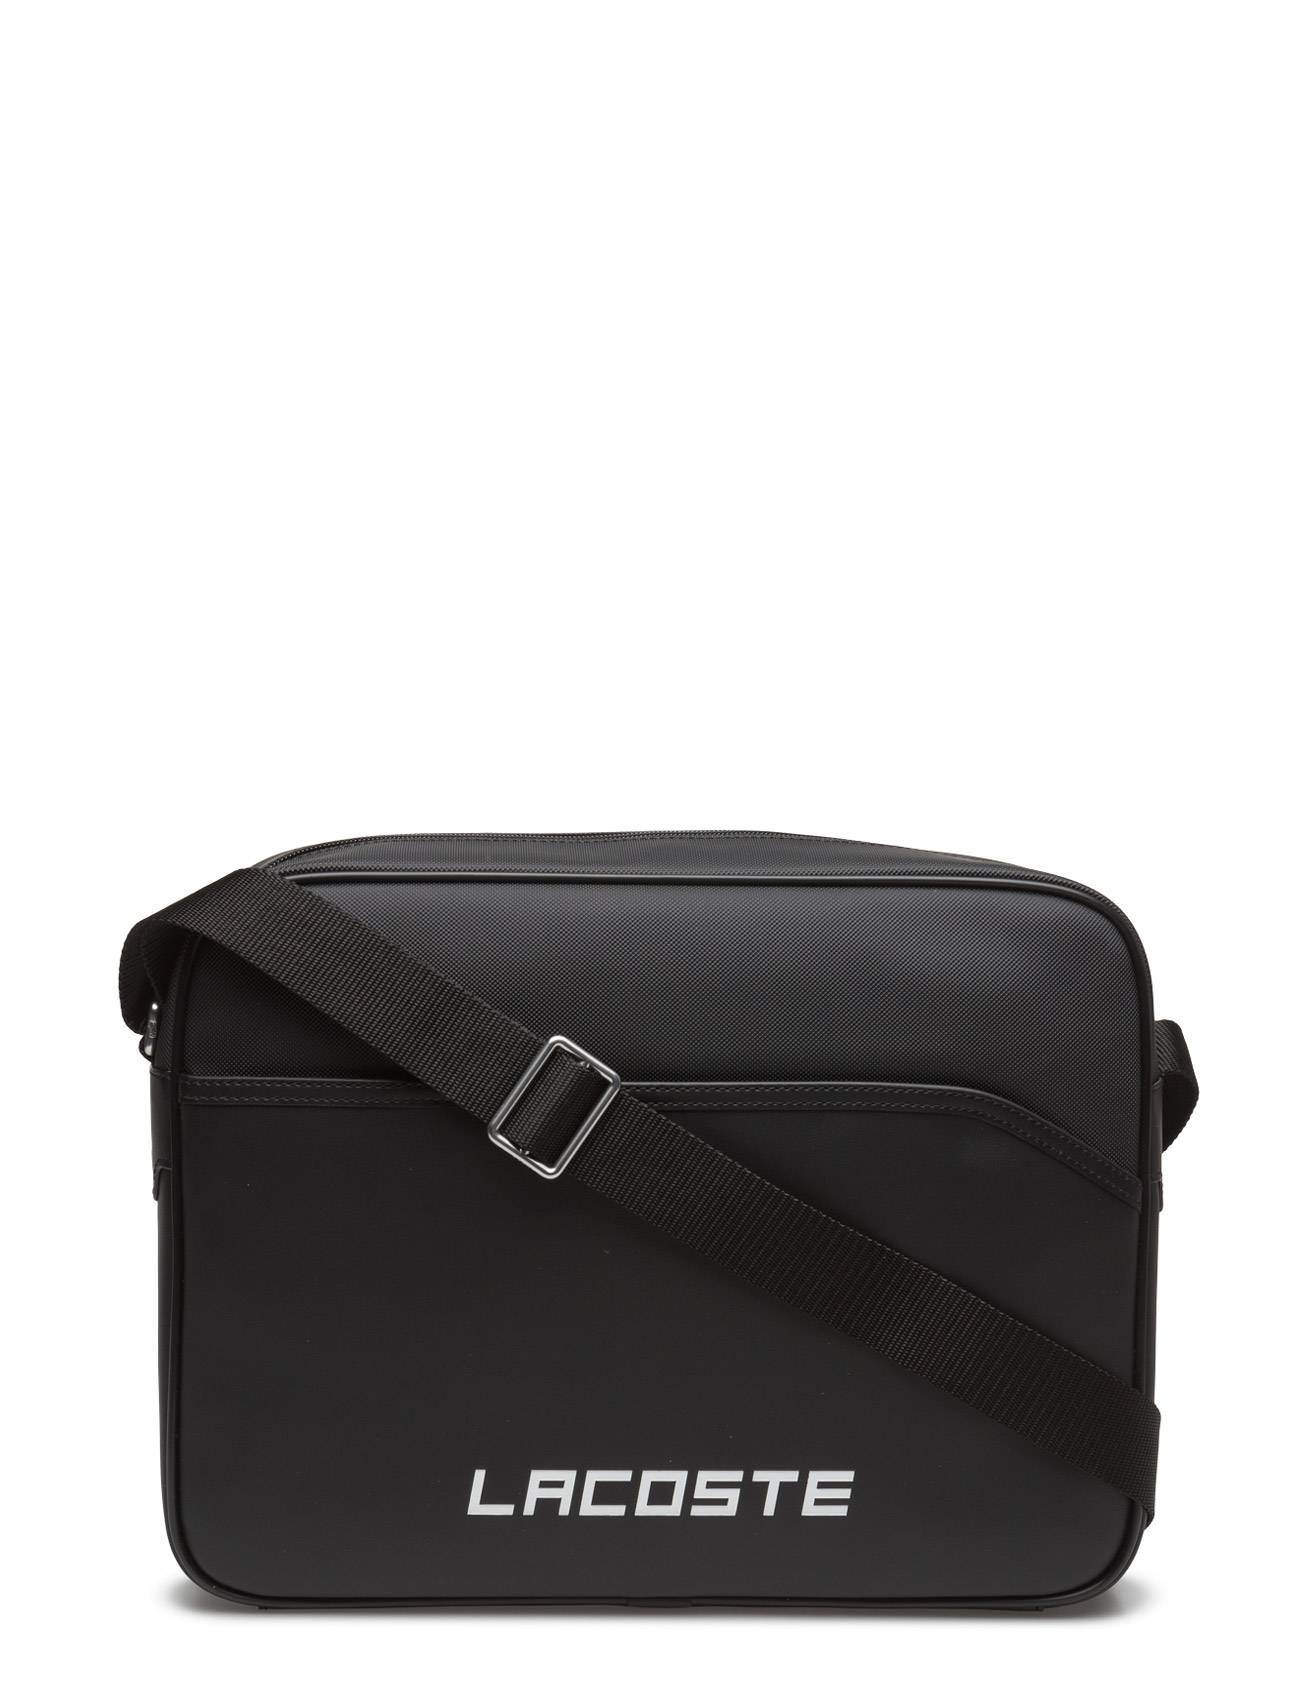 lacoste – Leather goods luggage fra boozt.com dk